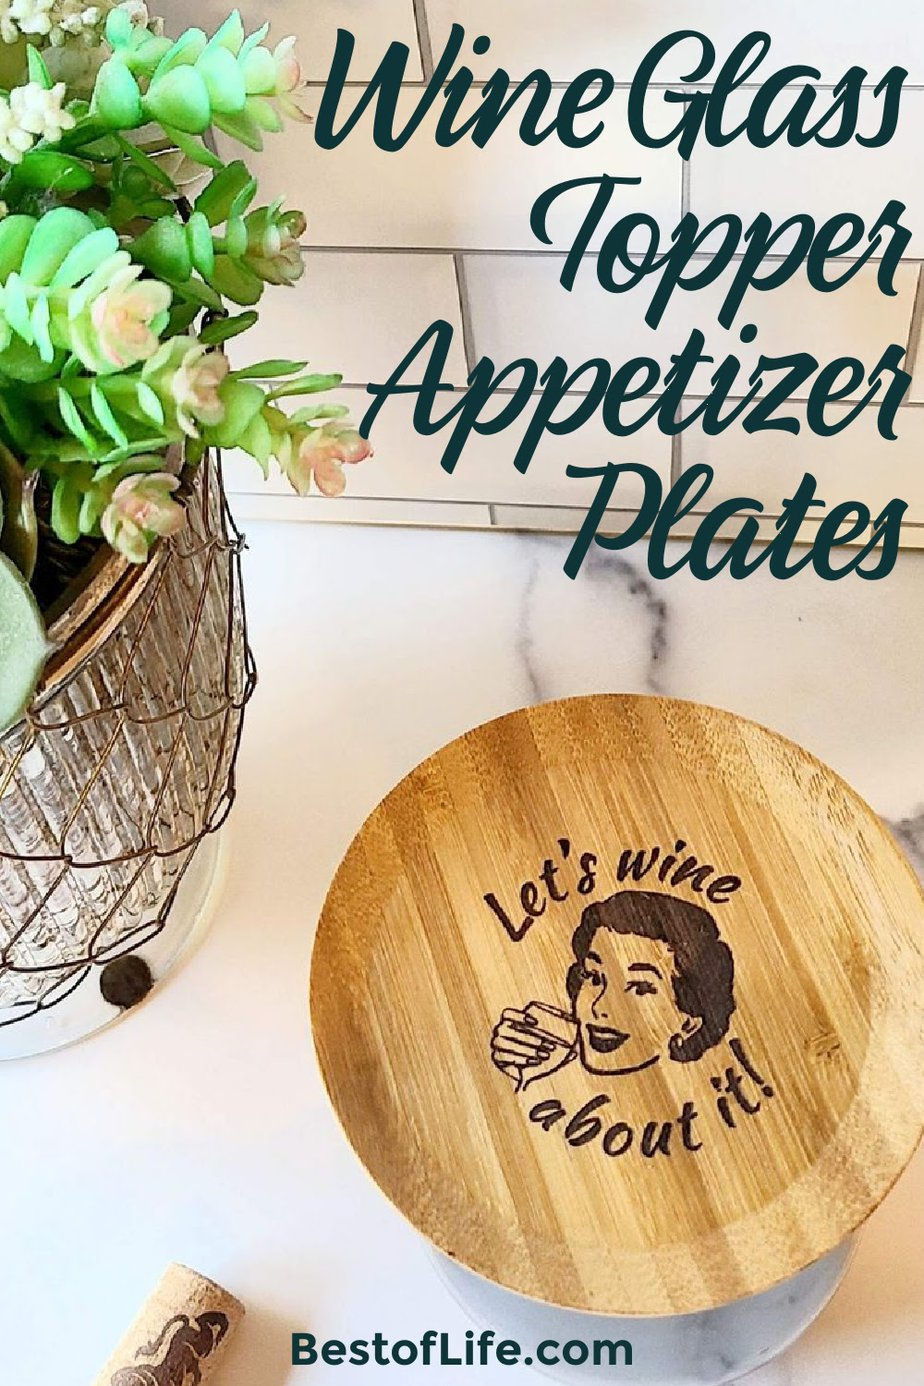 The best wine glass toppers help you mingle and are the perfect small appetizer plate. They serve as a great drink marker and help you show off your personality, too. Wine Glasses | DIY Wine Glass Toppers | Tips for Drinking Wine | Wine Party Ideas | Party Planning | Party Supplies #winedown #partytips via @thebestoflife